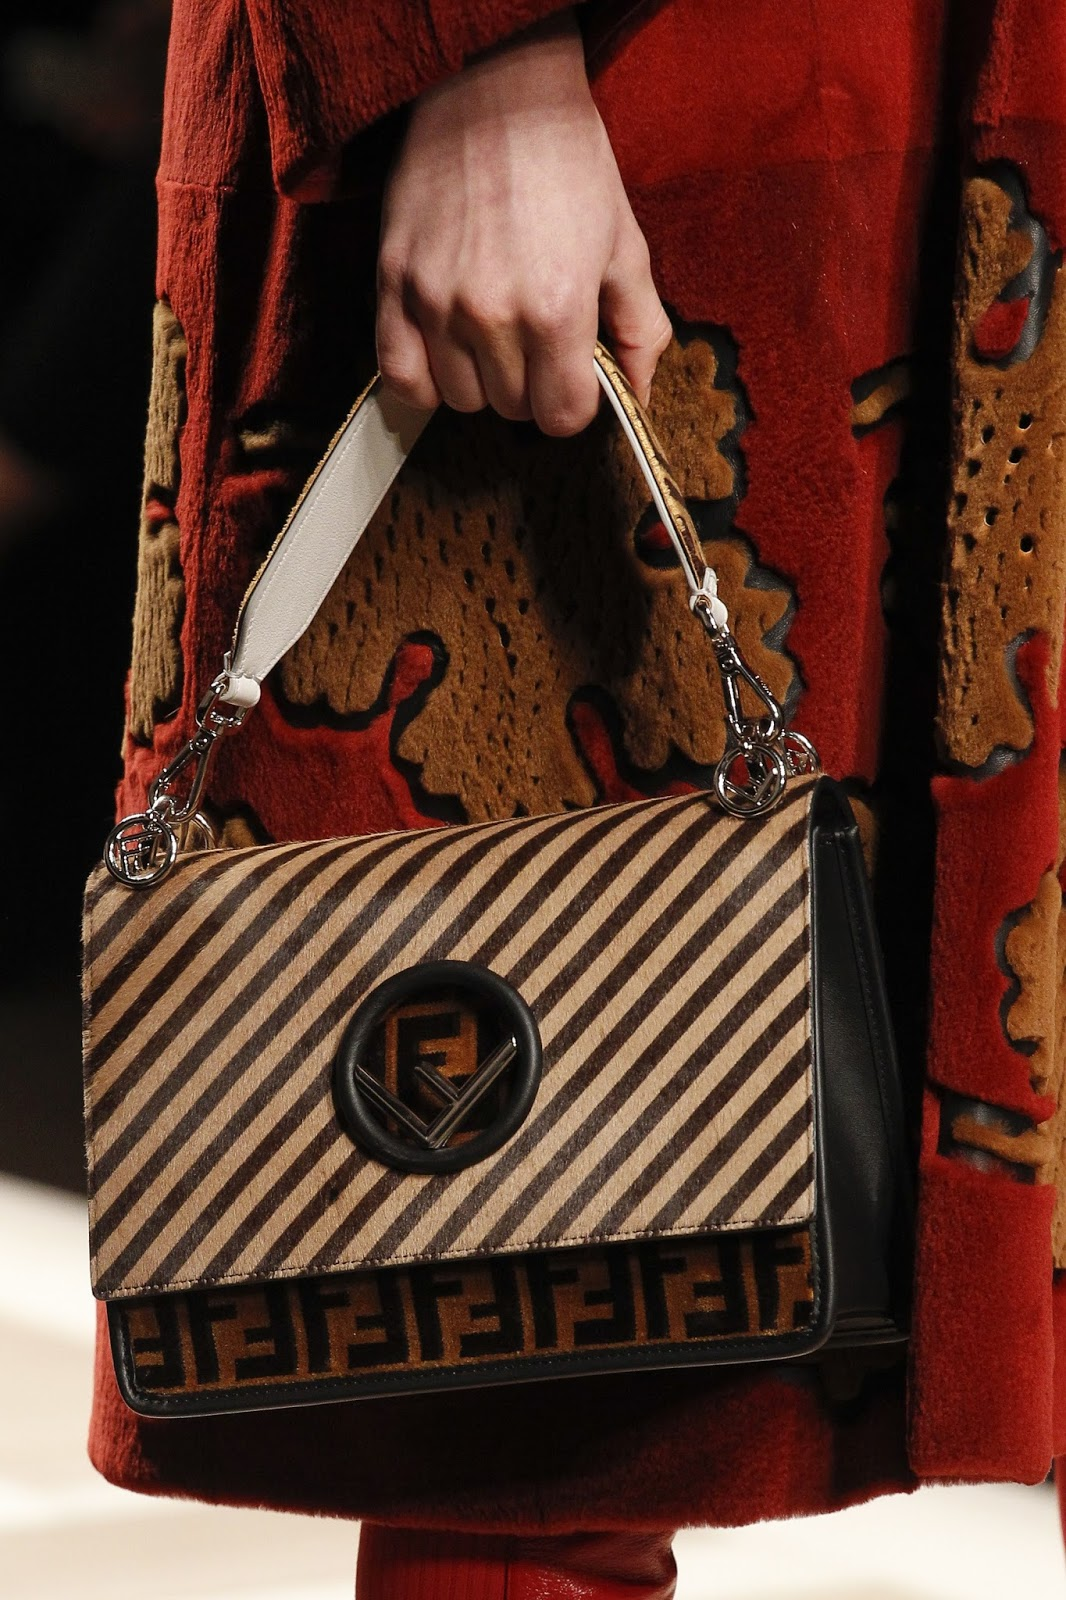 c625461158 MFW: Fendi Fall/Winter 17 Bags Report - ABDI